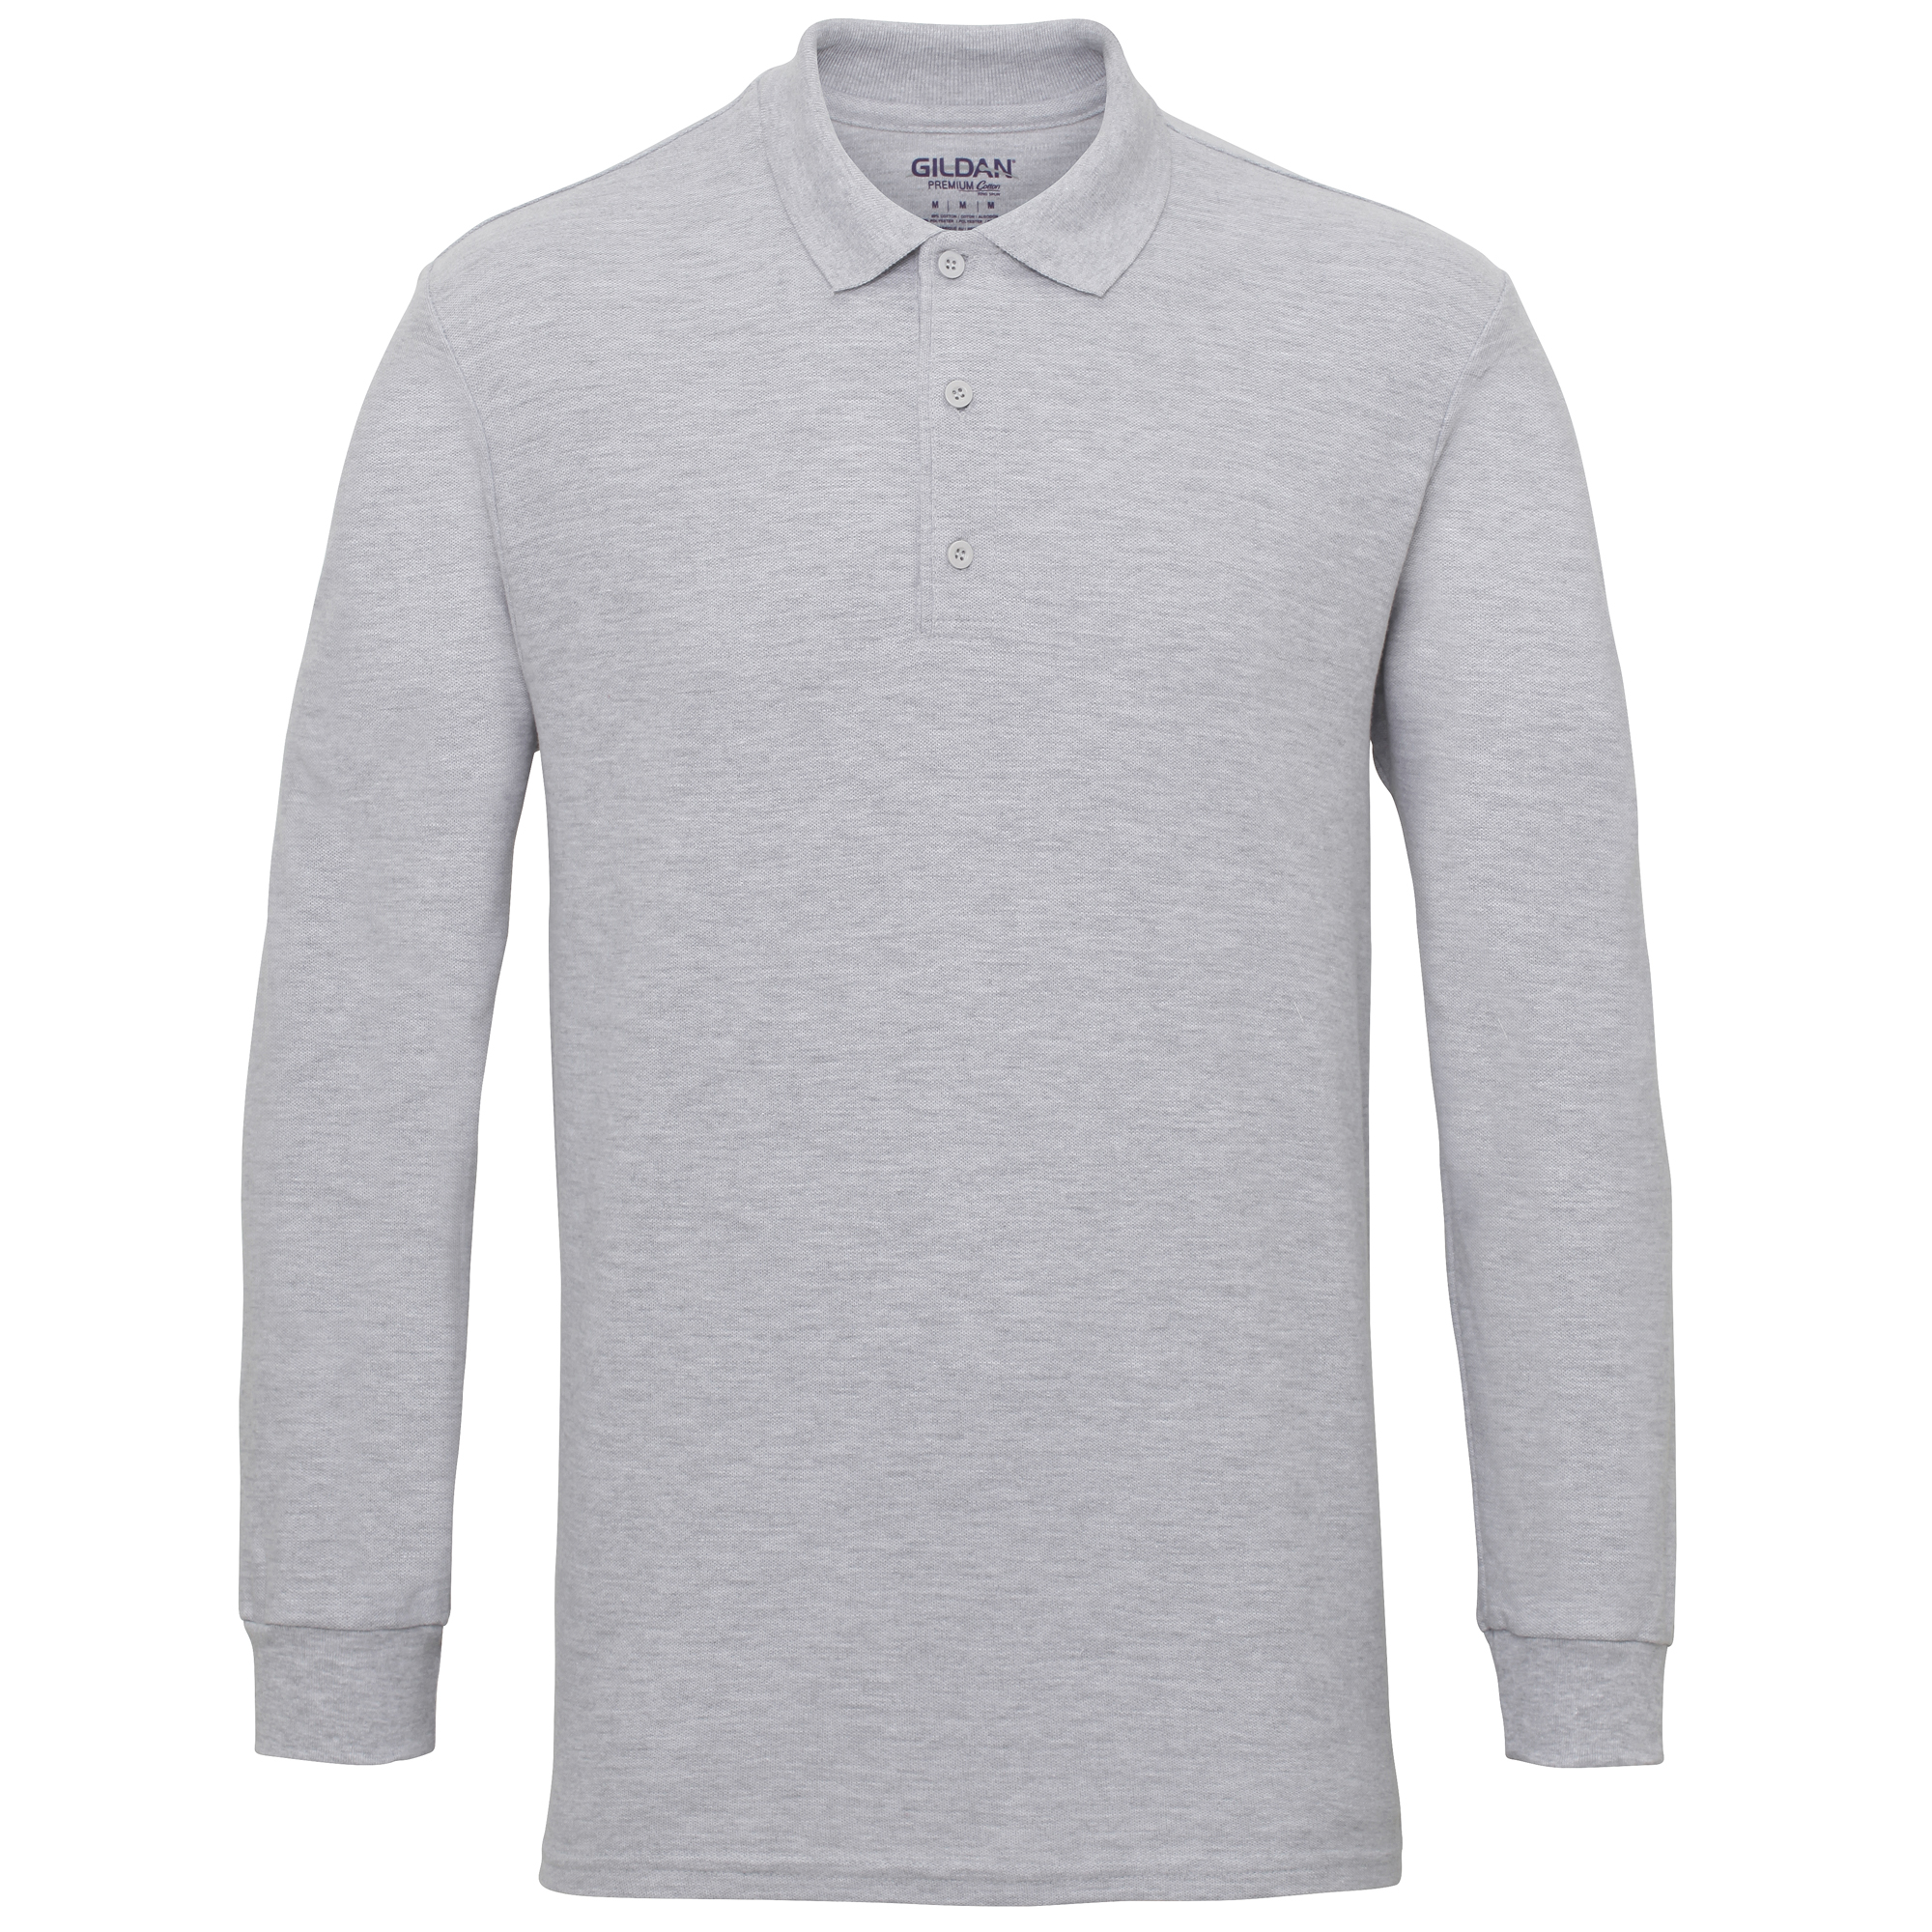 Gildan-Mens-Long-Sleeve-Double-Pique-Cotton-Polo-Shirt-BC3485 thumbnail 9